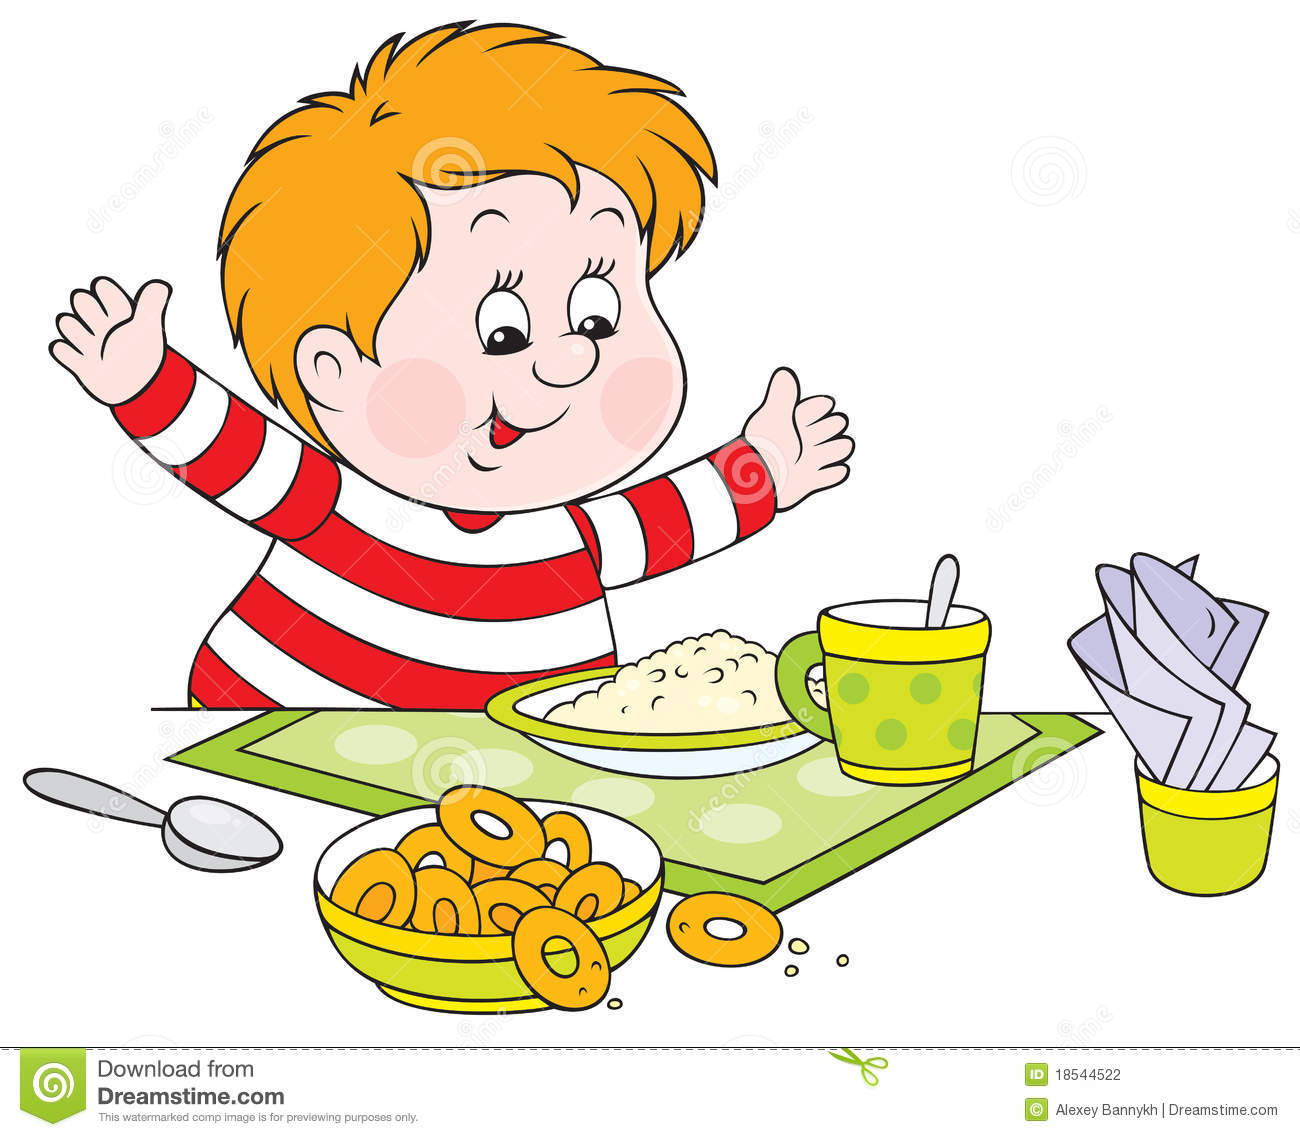 Breakfast clipart nutritious food Clipart Save Collection Clipart Healthy